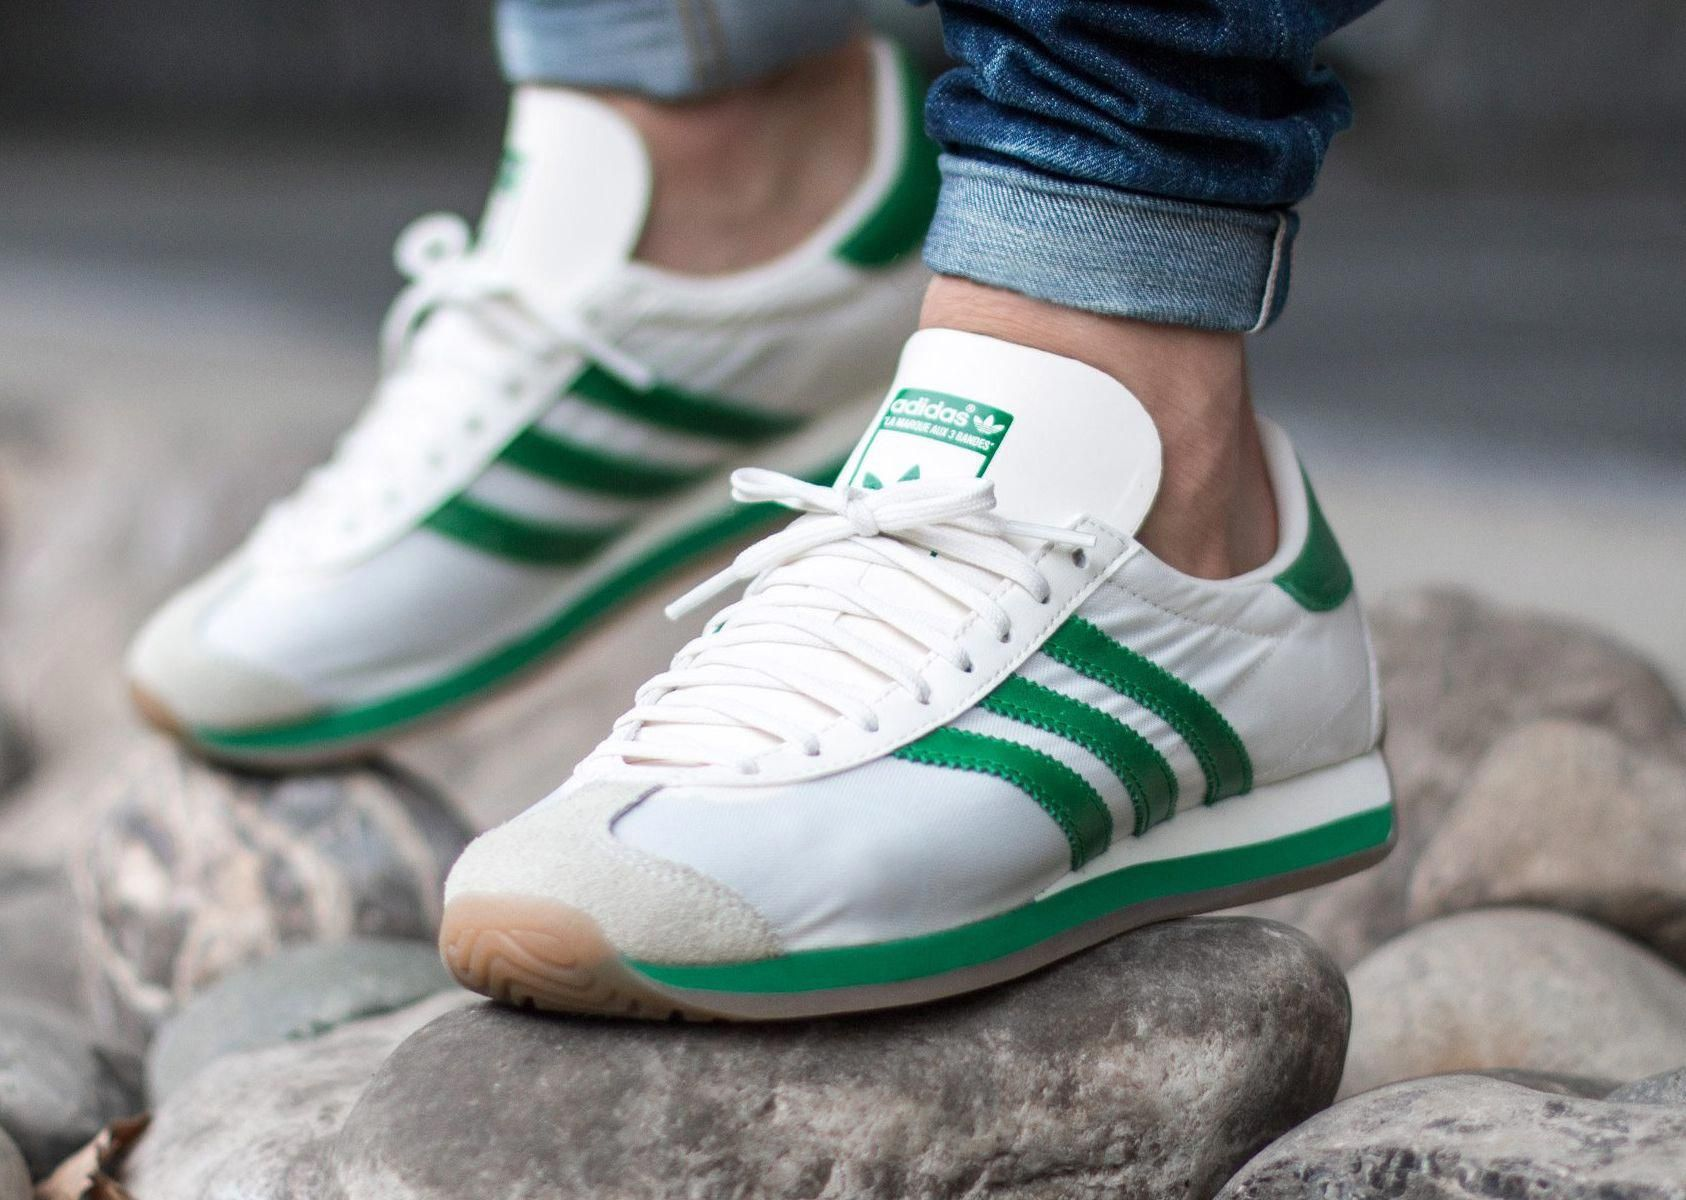 Pickering 鍔 Sombra  Adidas Country OG 'Chalk White/Green/Gum' 2016 | Sneakers men, Sneakers,  Stylish sneakers